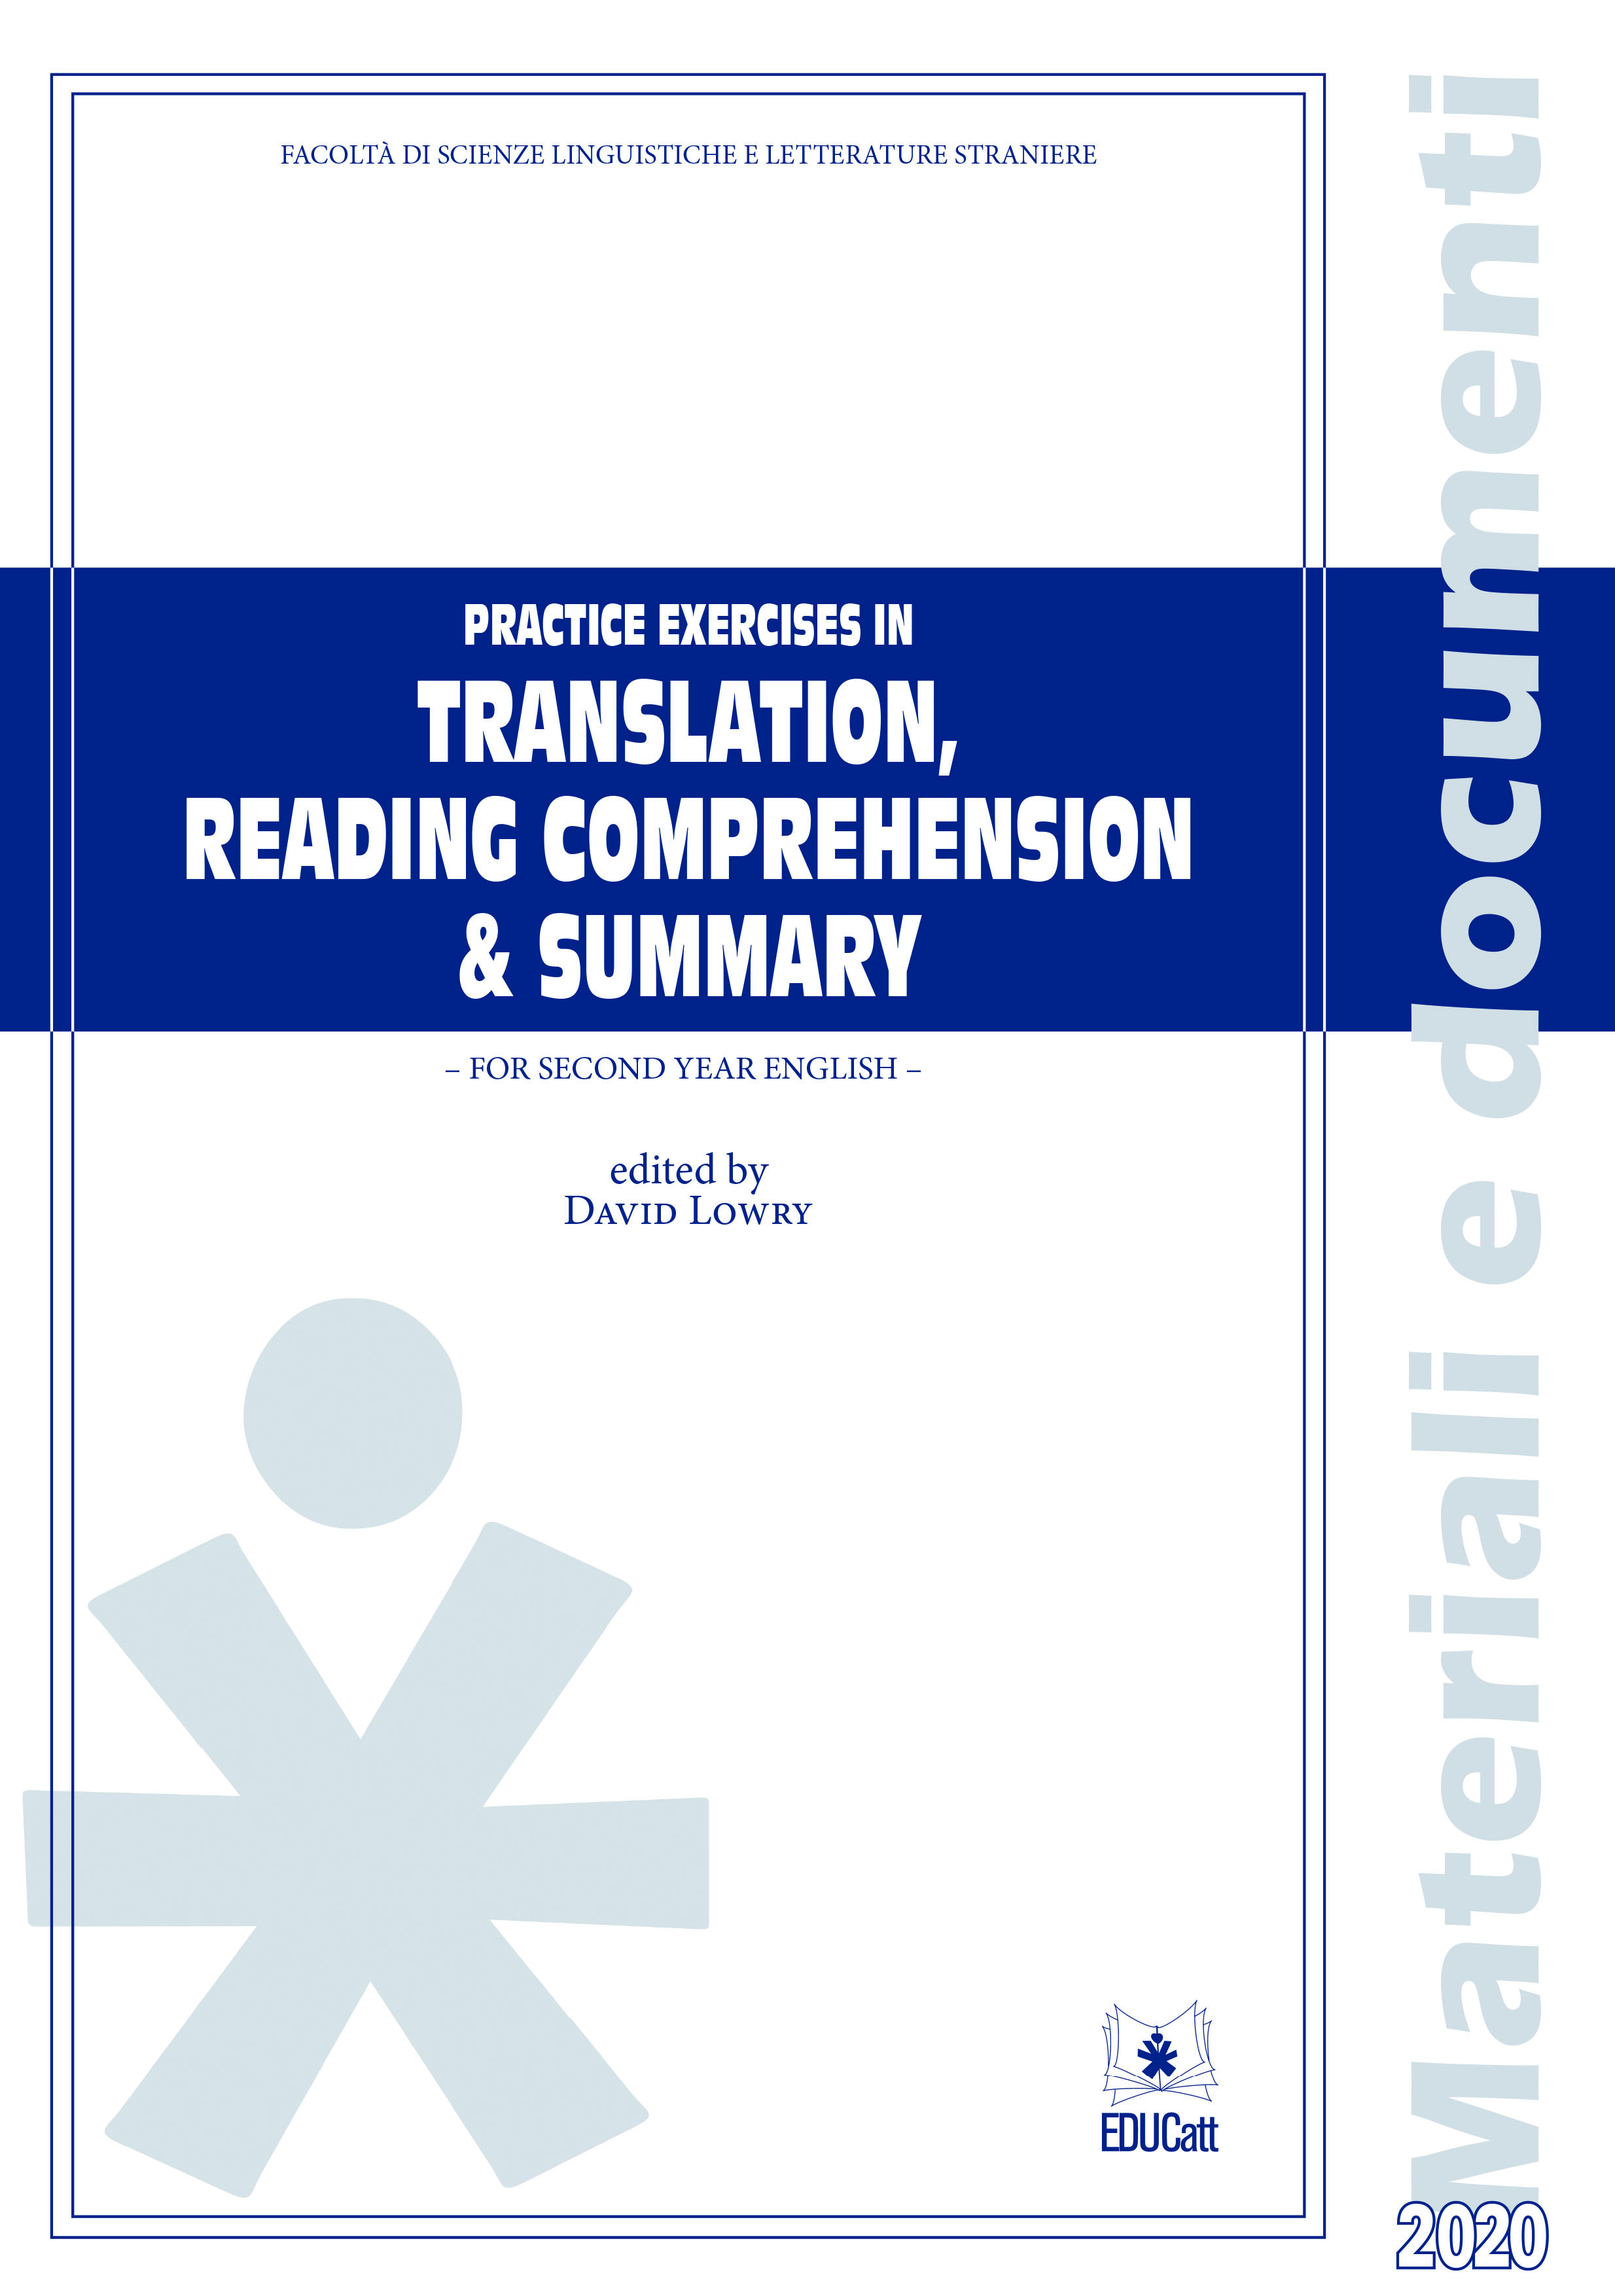 PRACTICE EXERCISES IN TRANSLATION, READING COMPREHENSION & SUMMARY - SECOND YEAR 2020